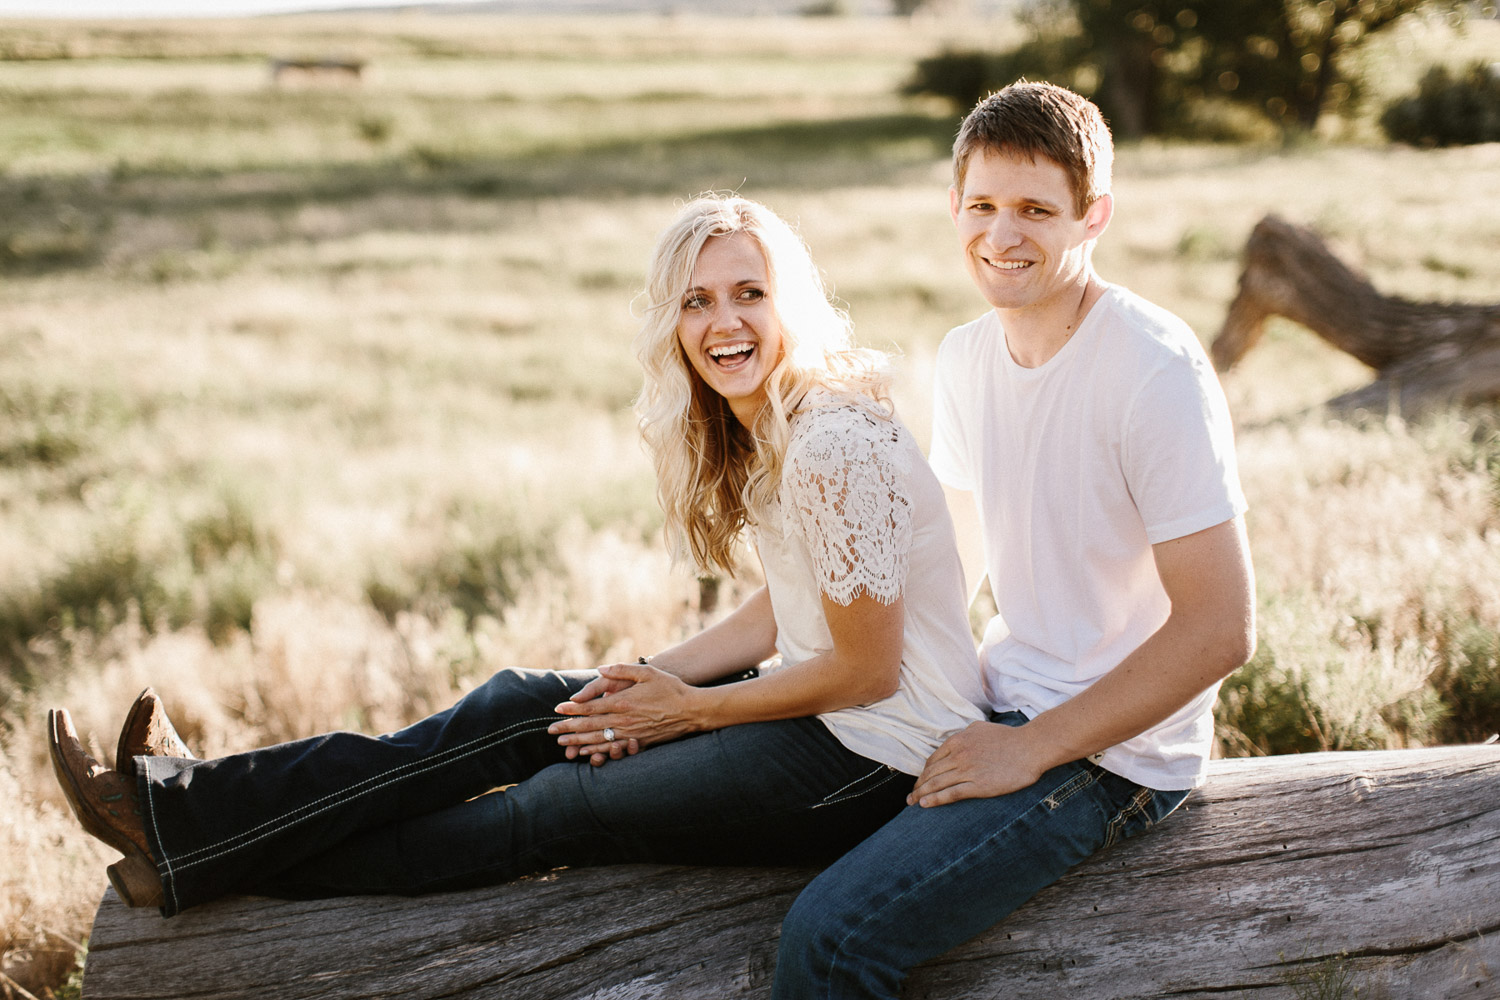 SiouxFalls_BlackHills_Adventure_Engagement_Wedding_Photographer_02.jpg